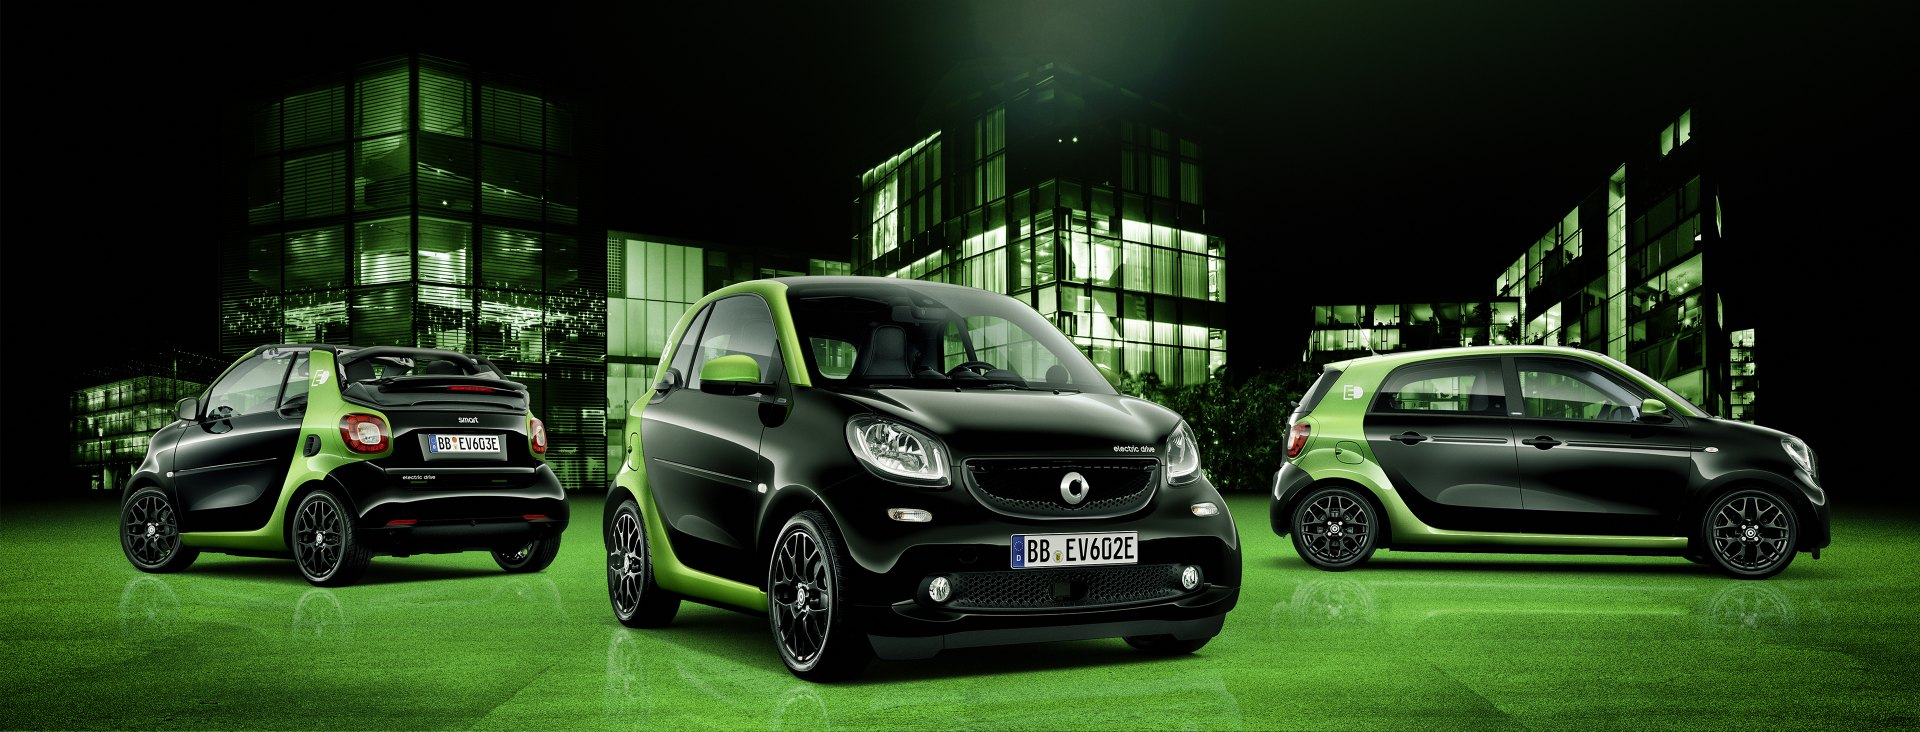 smart fortwo electric drive. subPage of smart electric drive